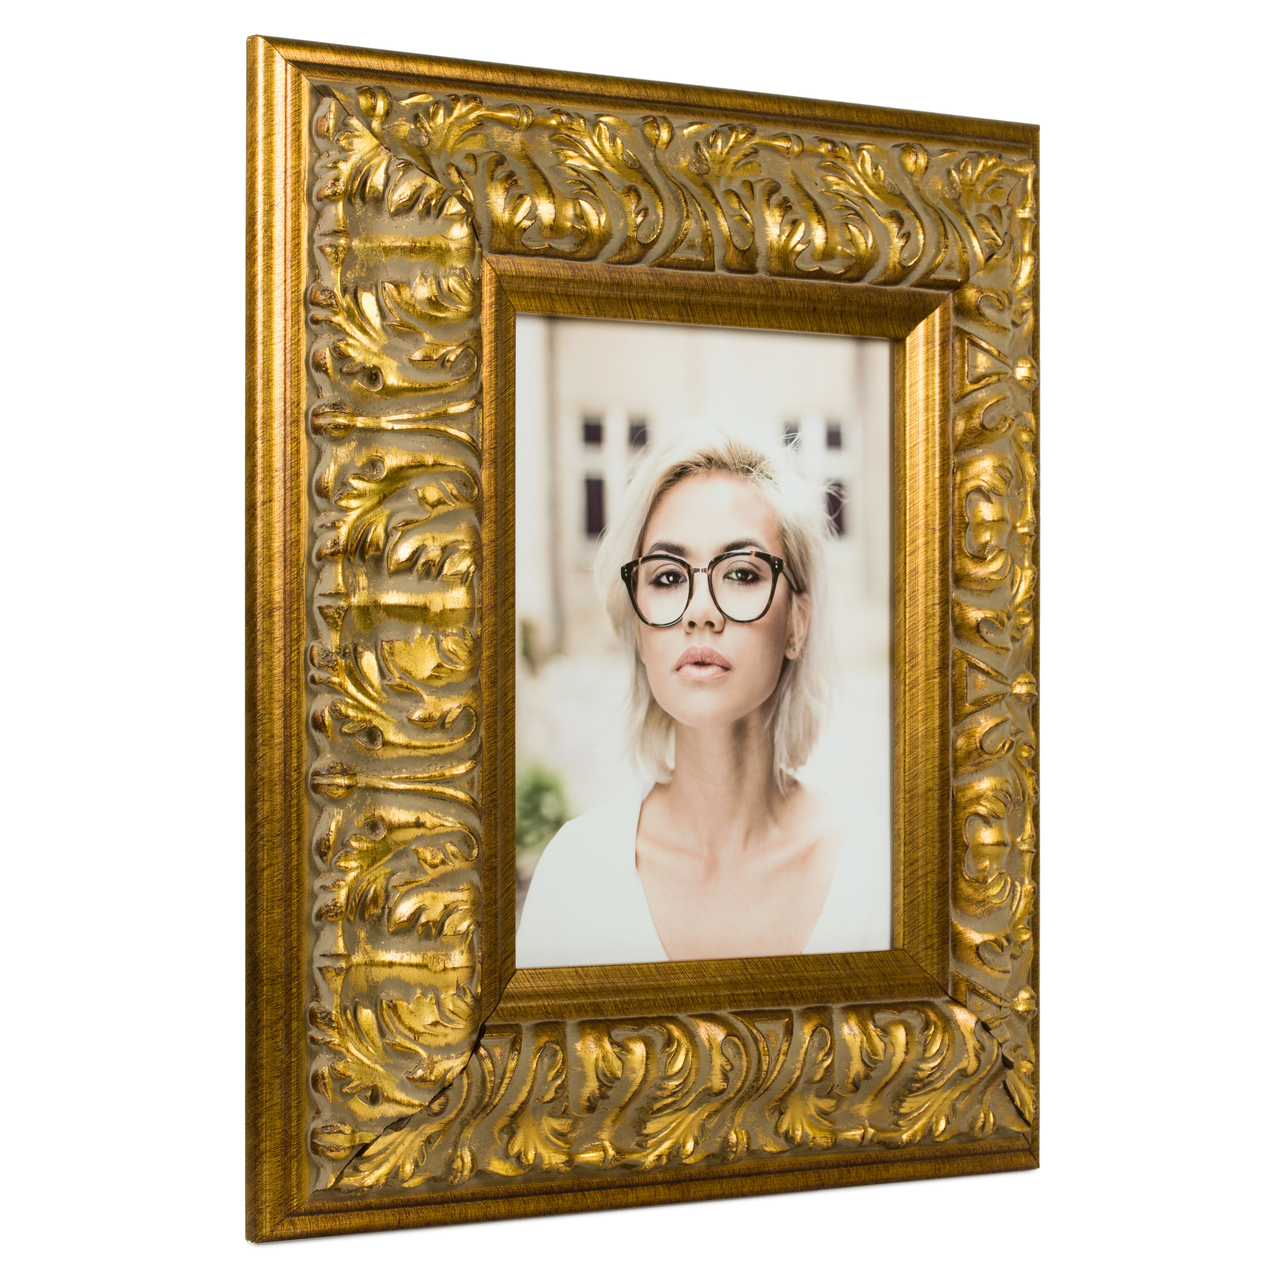 "Barroco 3.125"", Antique Gold Picture Frame"